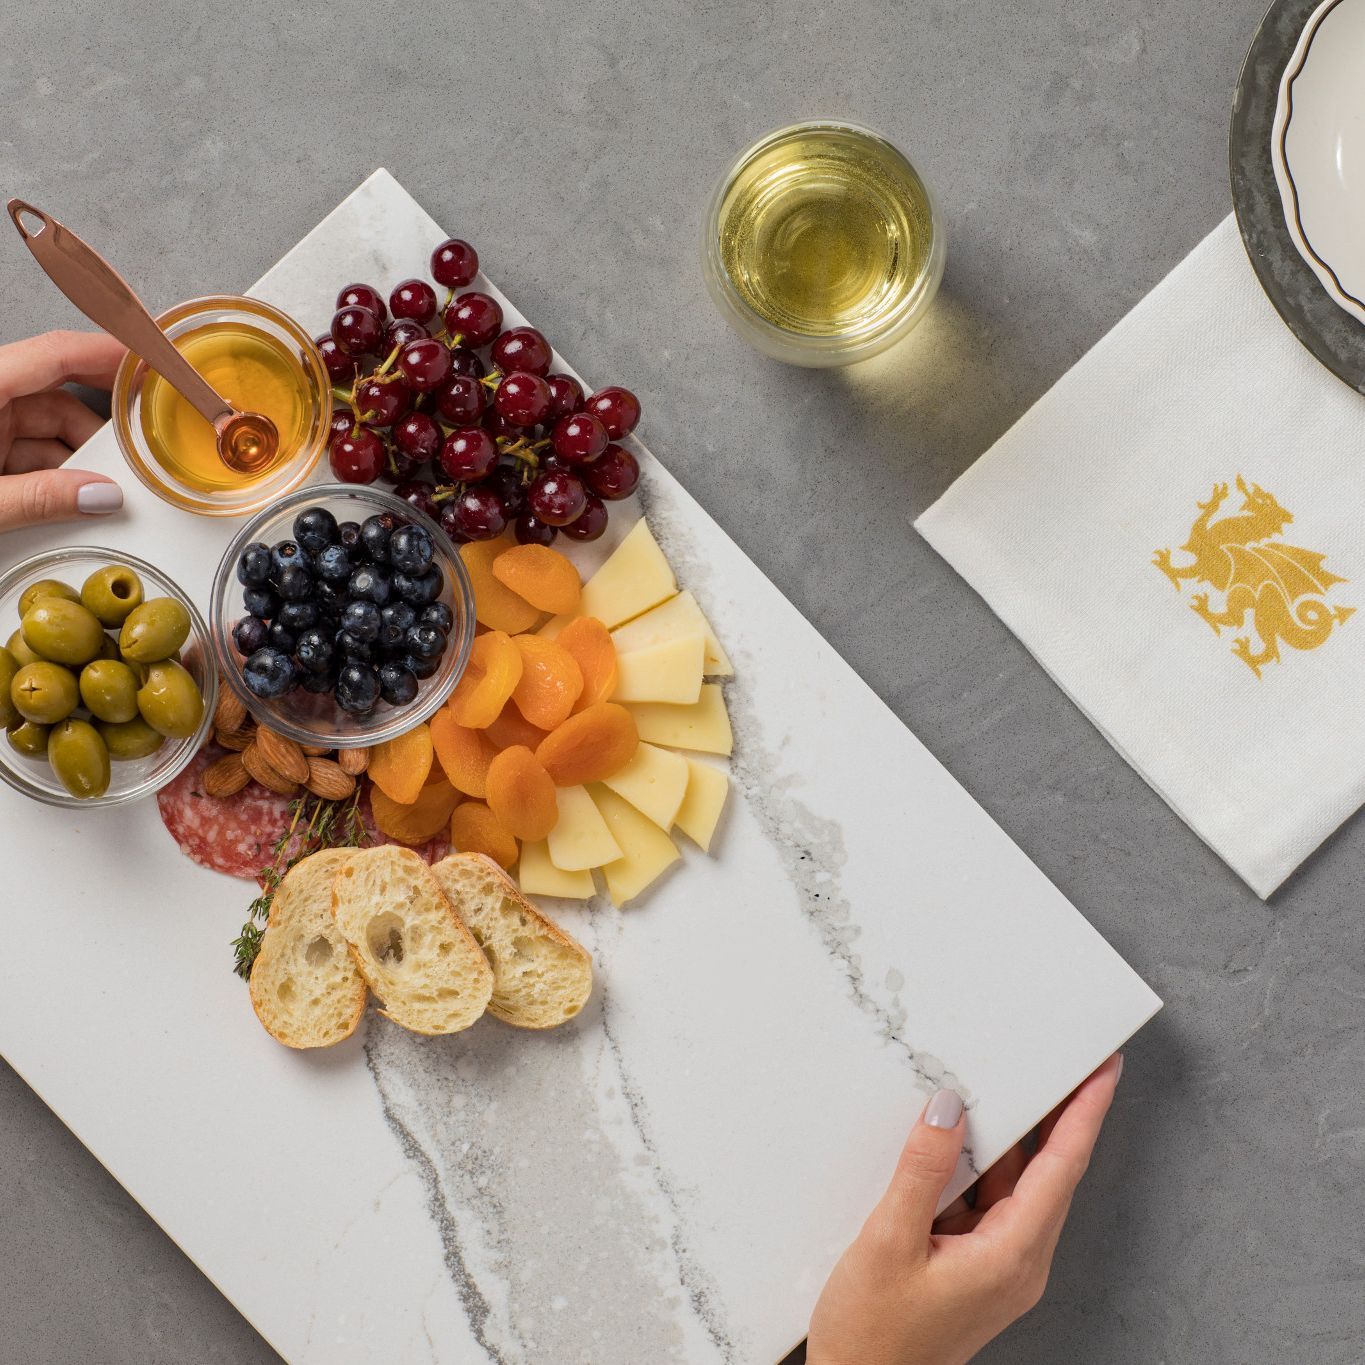 Cambria Brittanicca cheese plate being placed on a table.